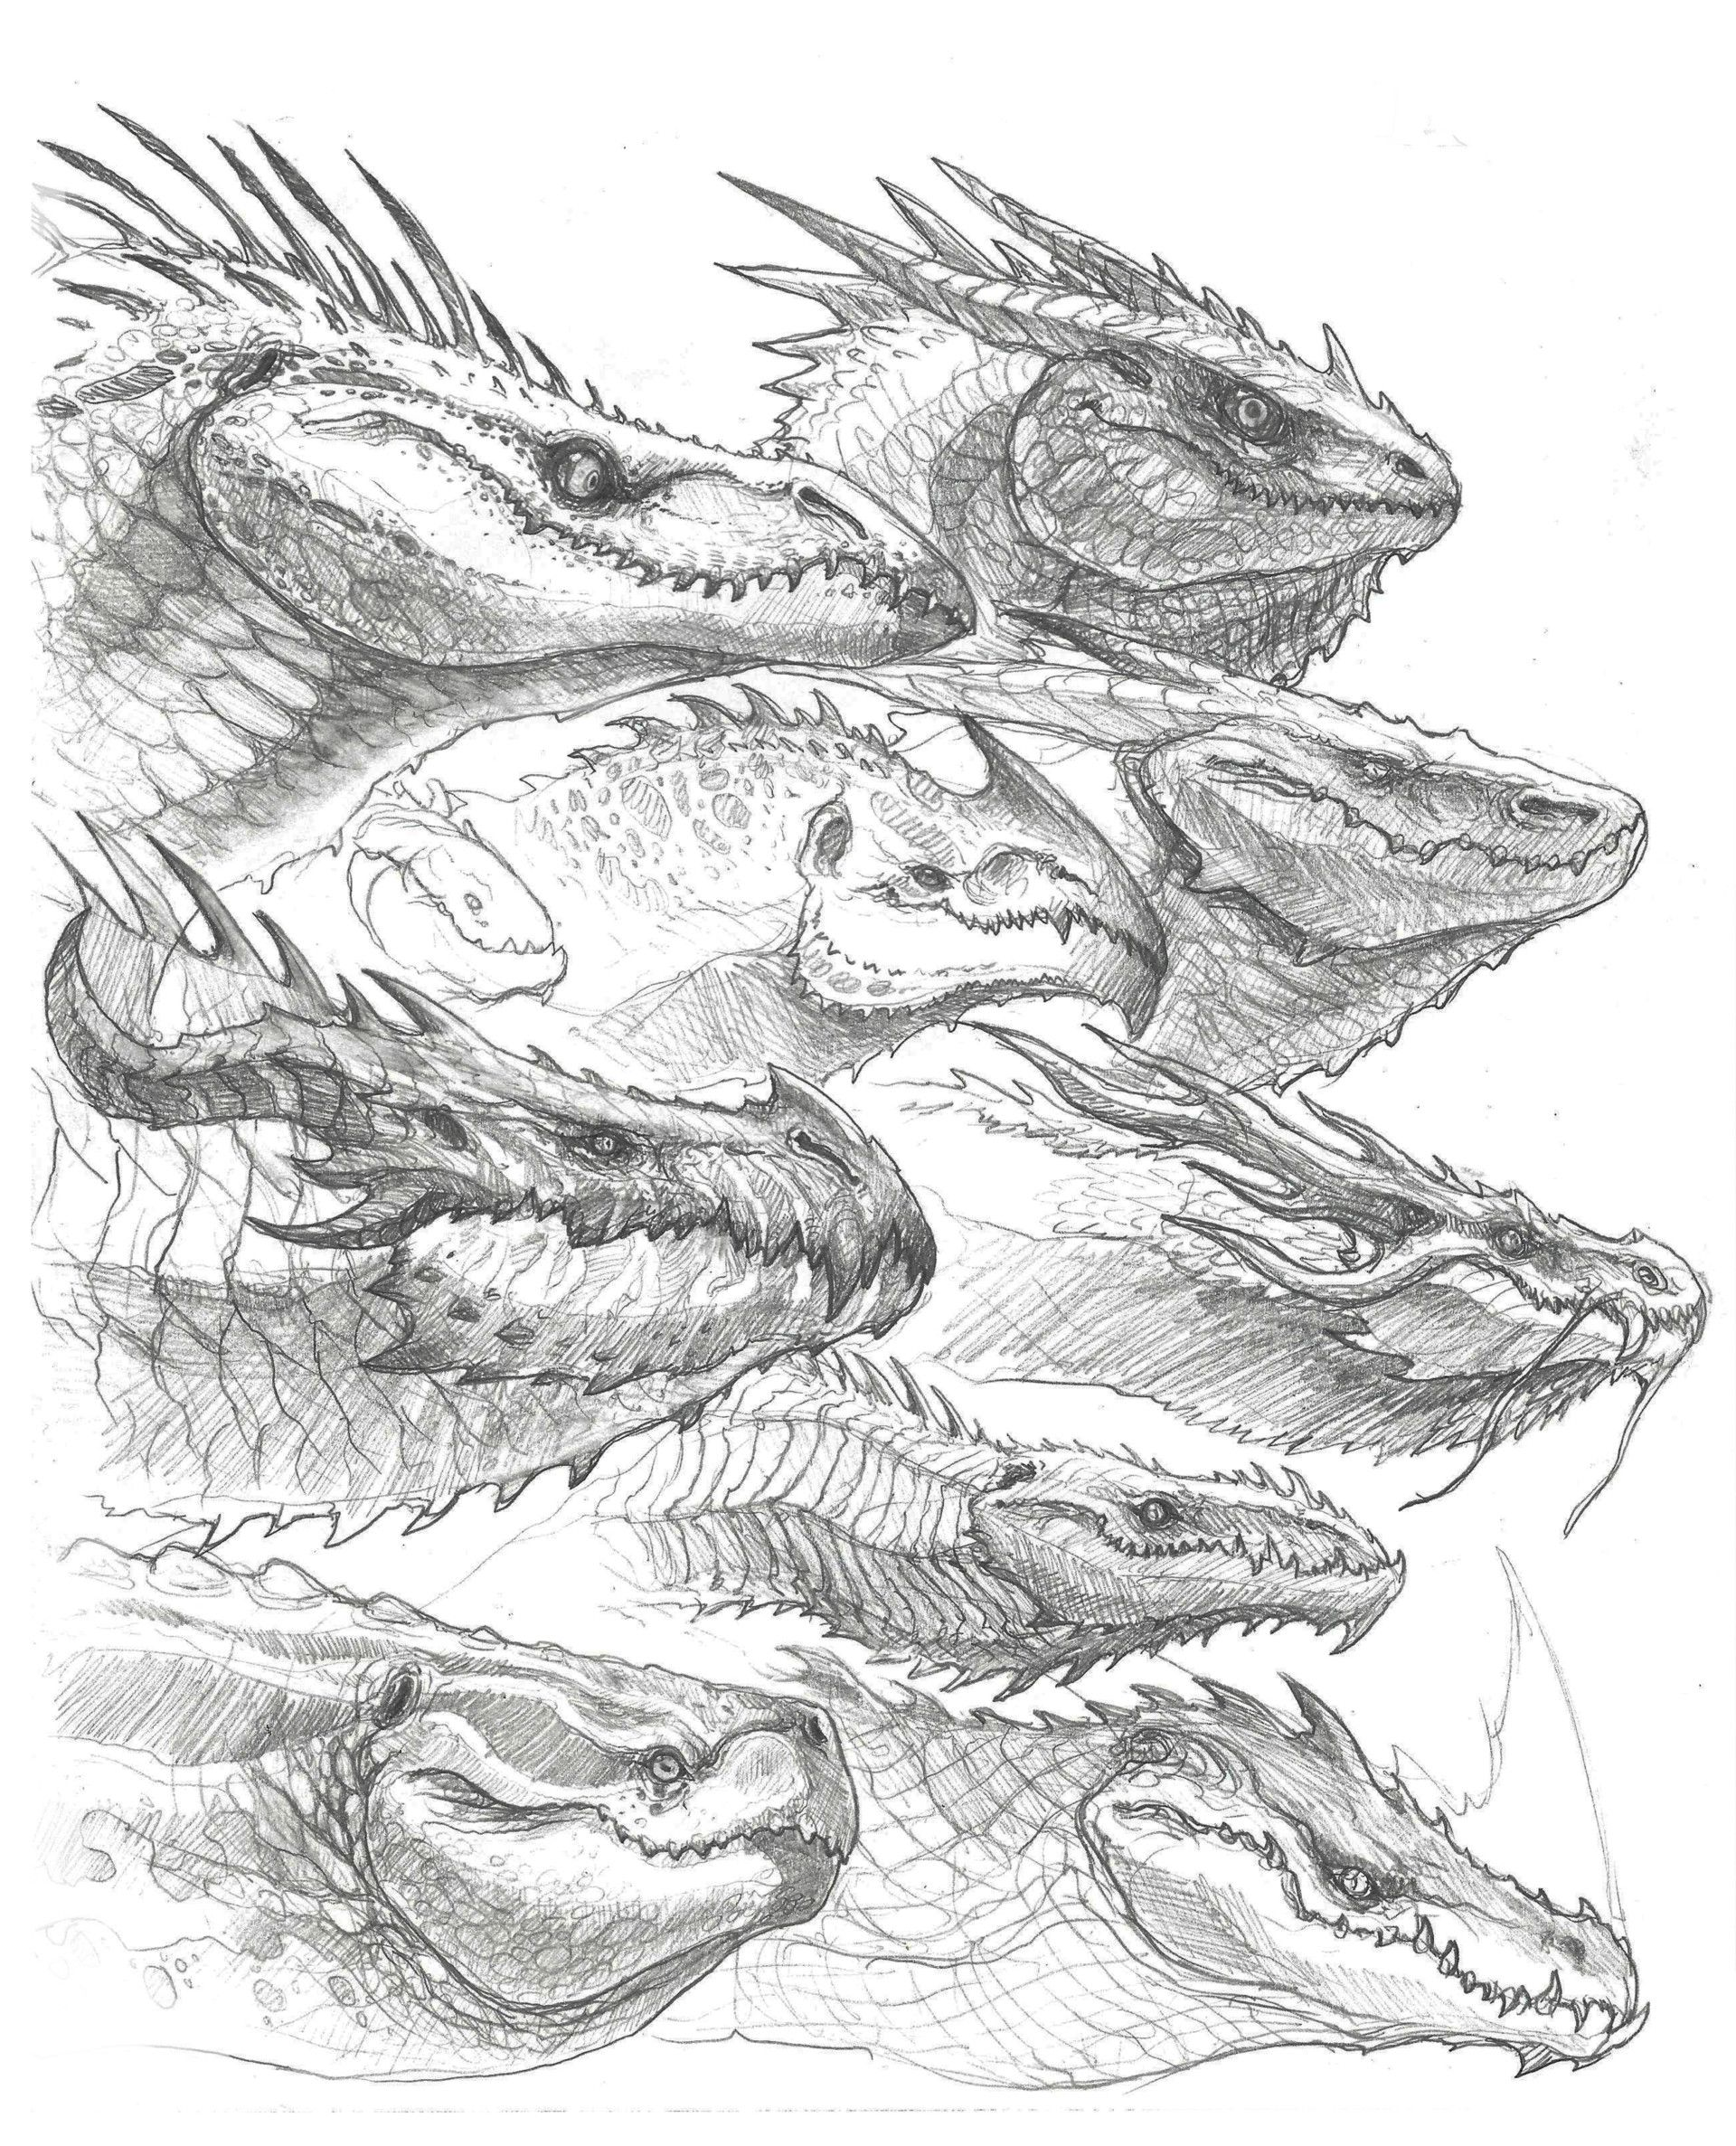 One Night I Was Doodling Up A Bunch Of Dragon Heads Just To